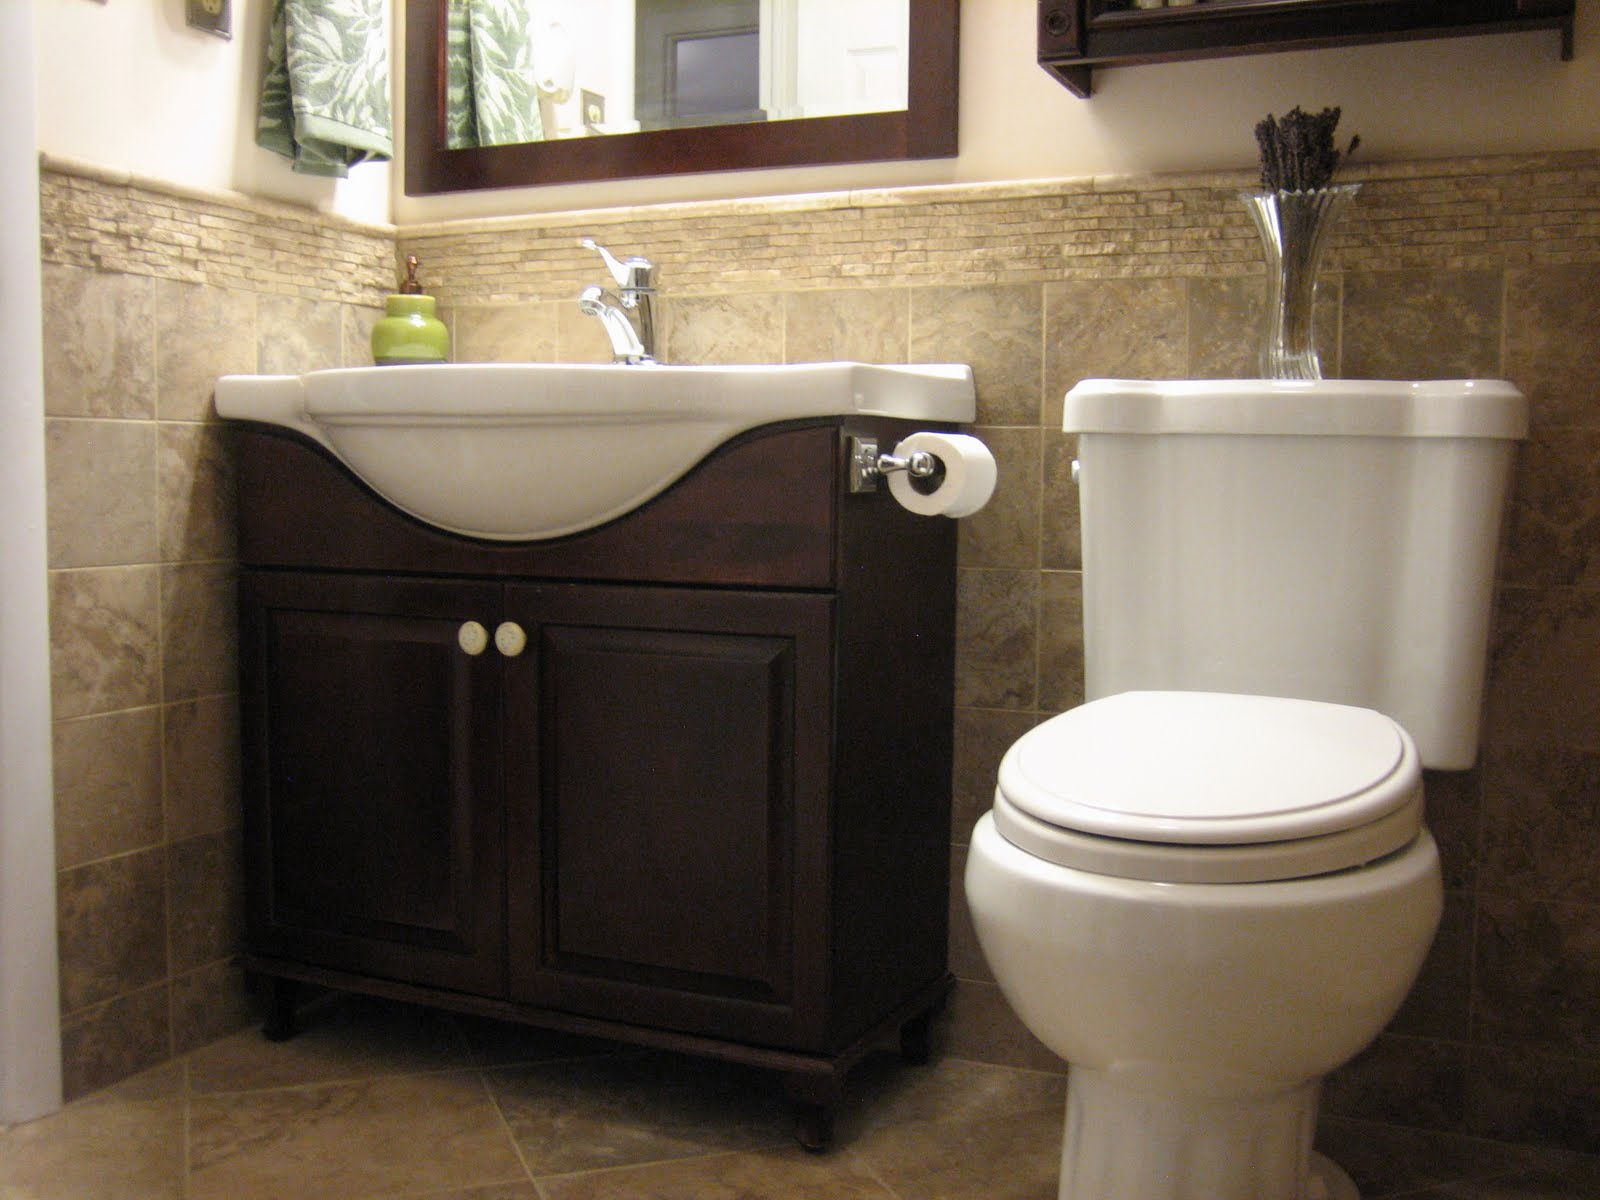 H winter showroom blog luxury master bath remodel athena for Half bathroom designs